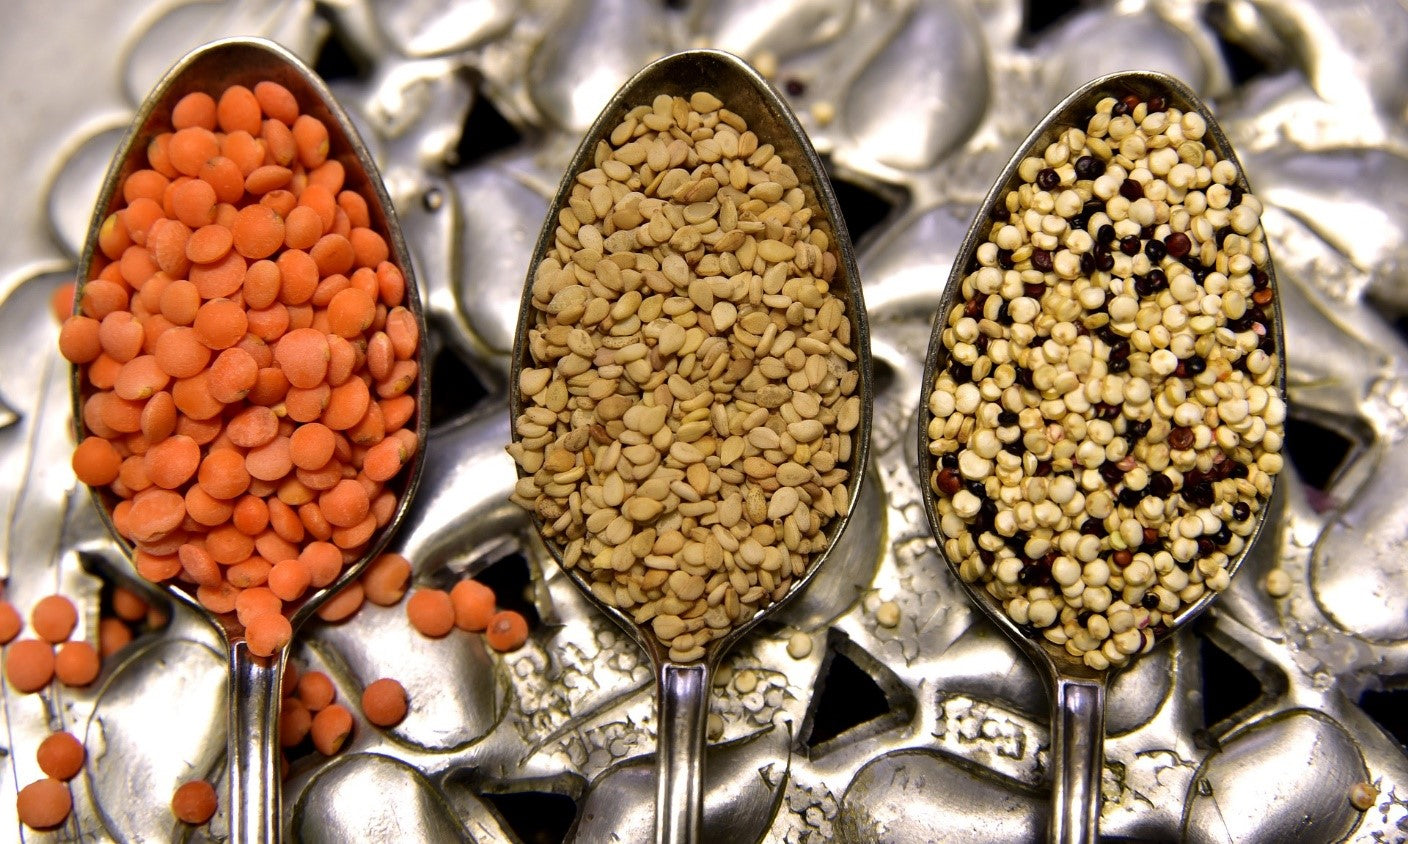 Three different kinds of lentils in spoons.